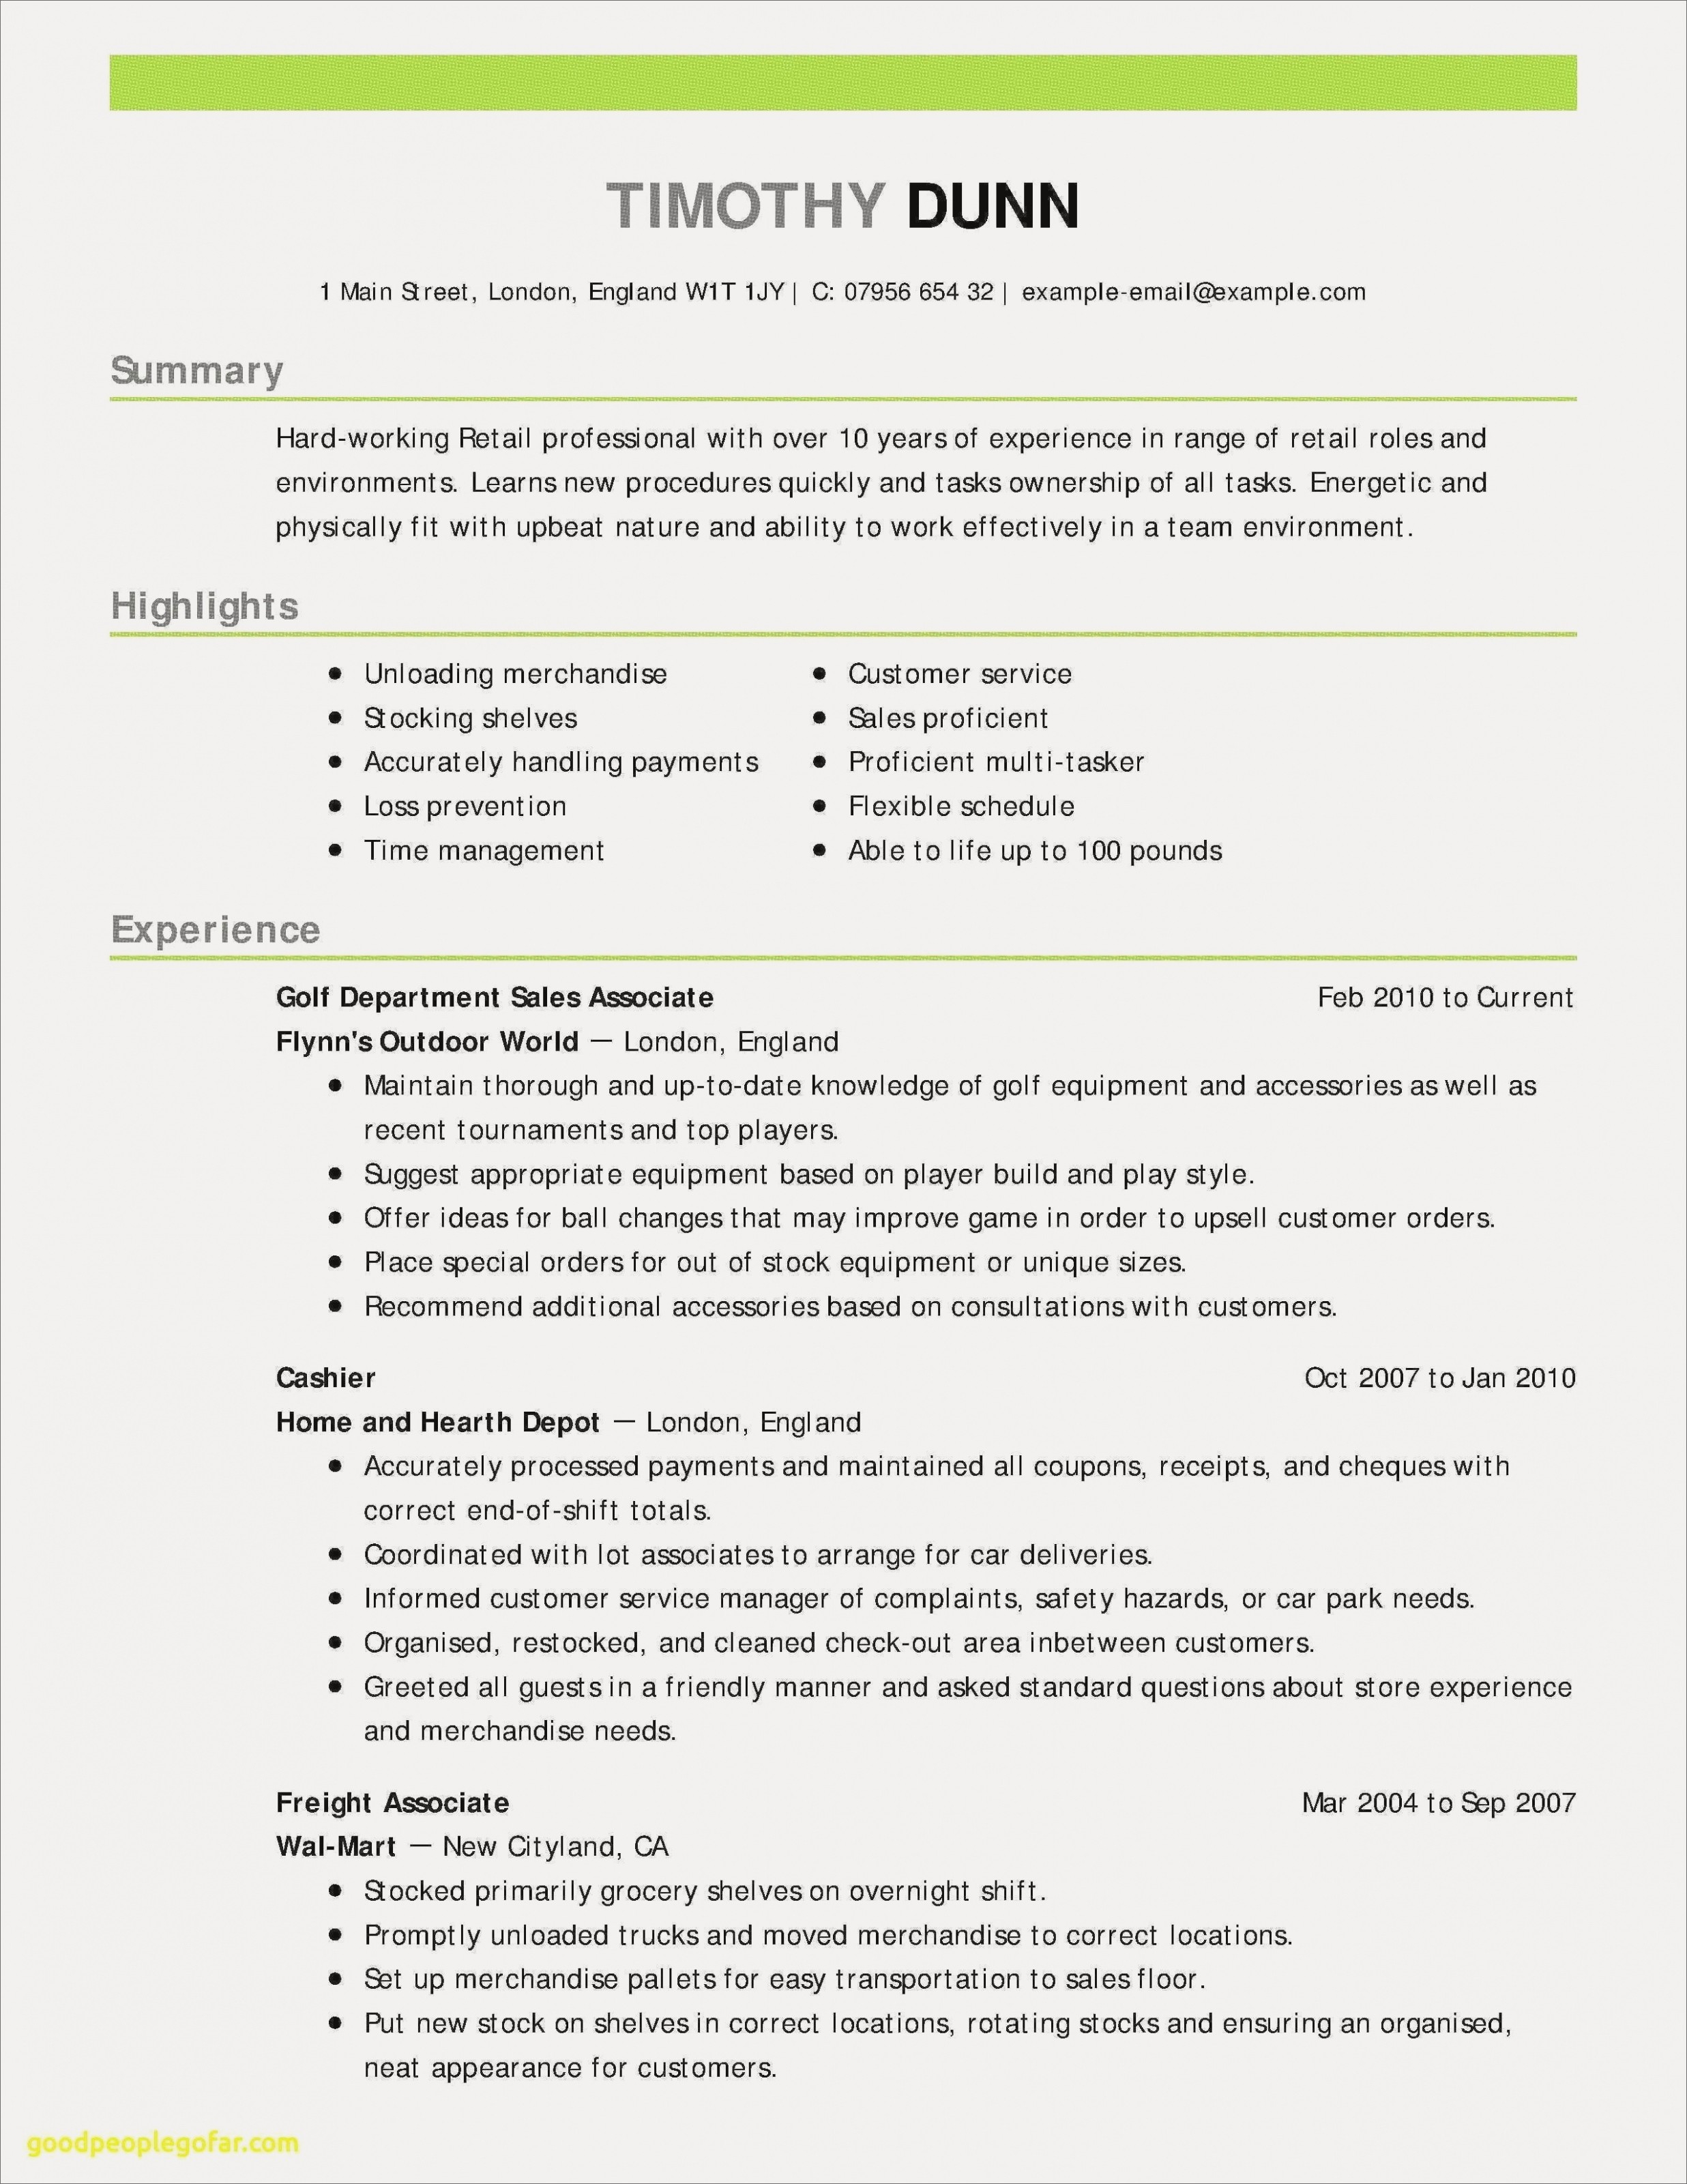 Resume Template for Maintenance Position - Customer Service Experience Resume Refrence Customer Service Resume